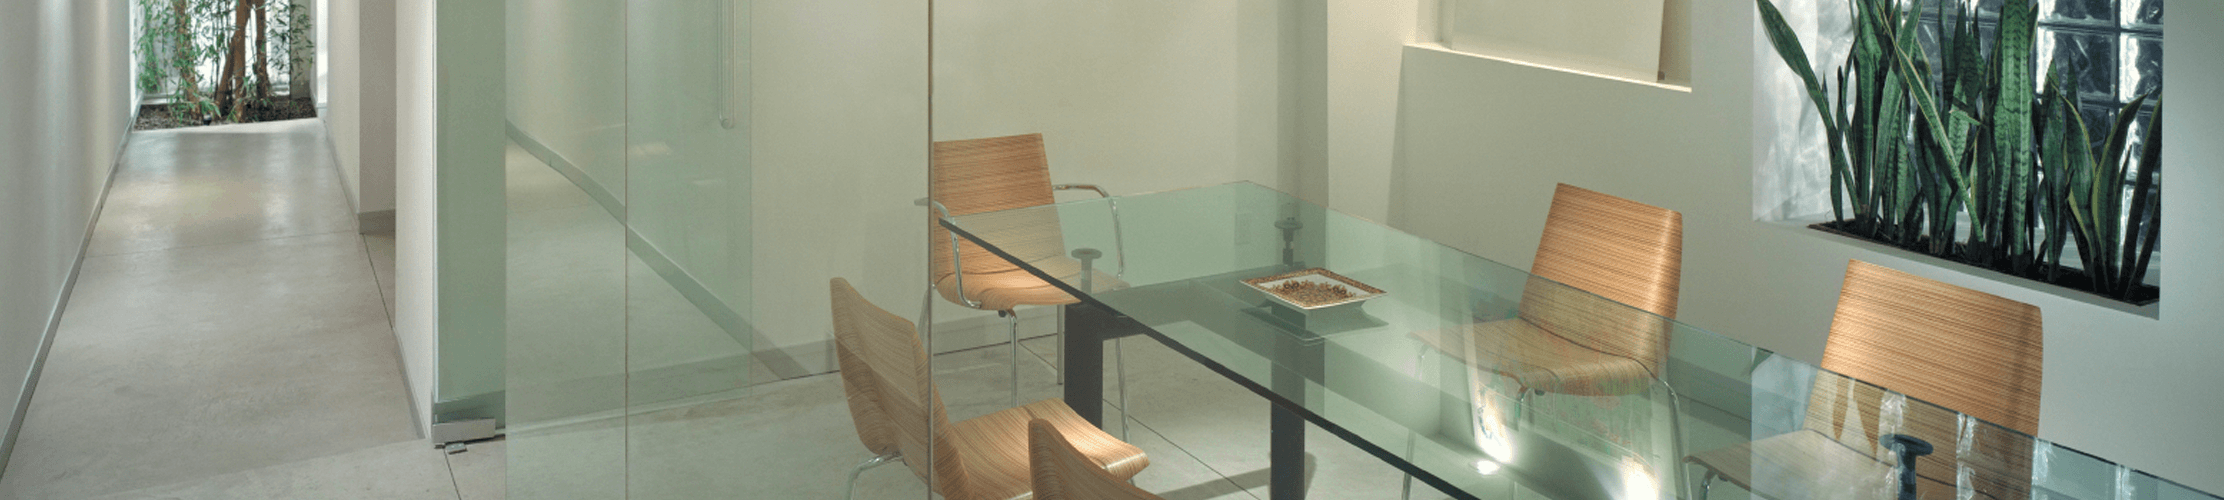 Custom Glass Solutions for your home or business